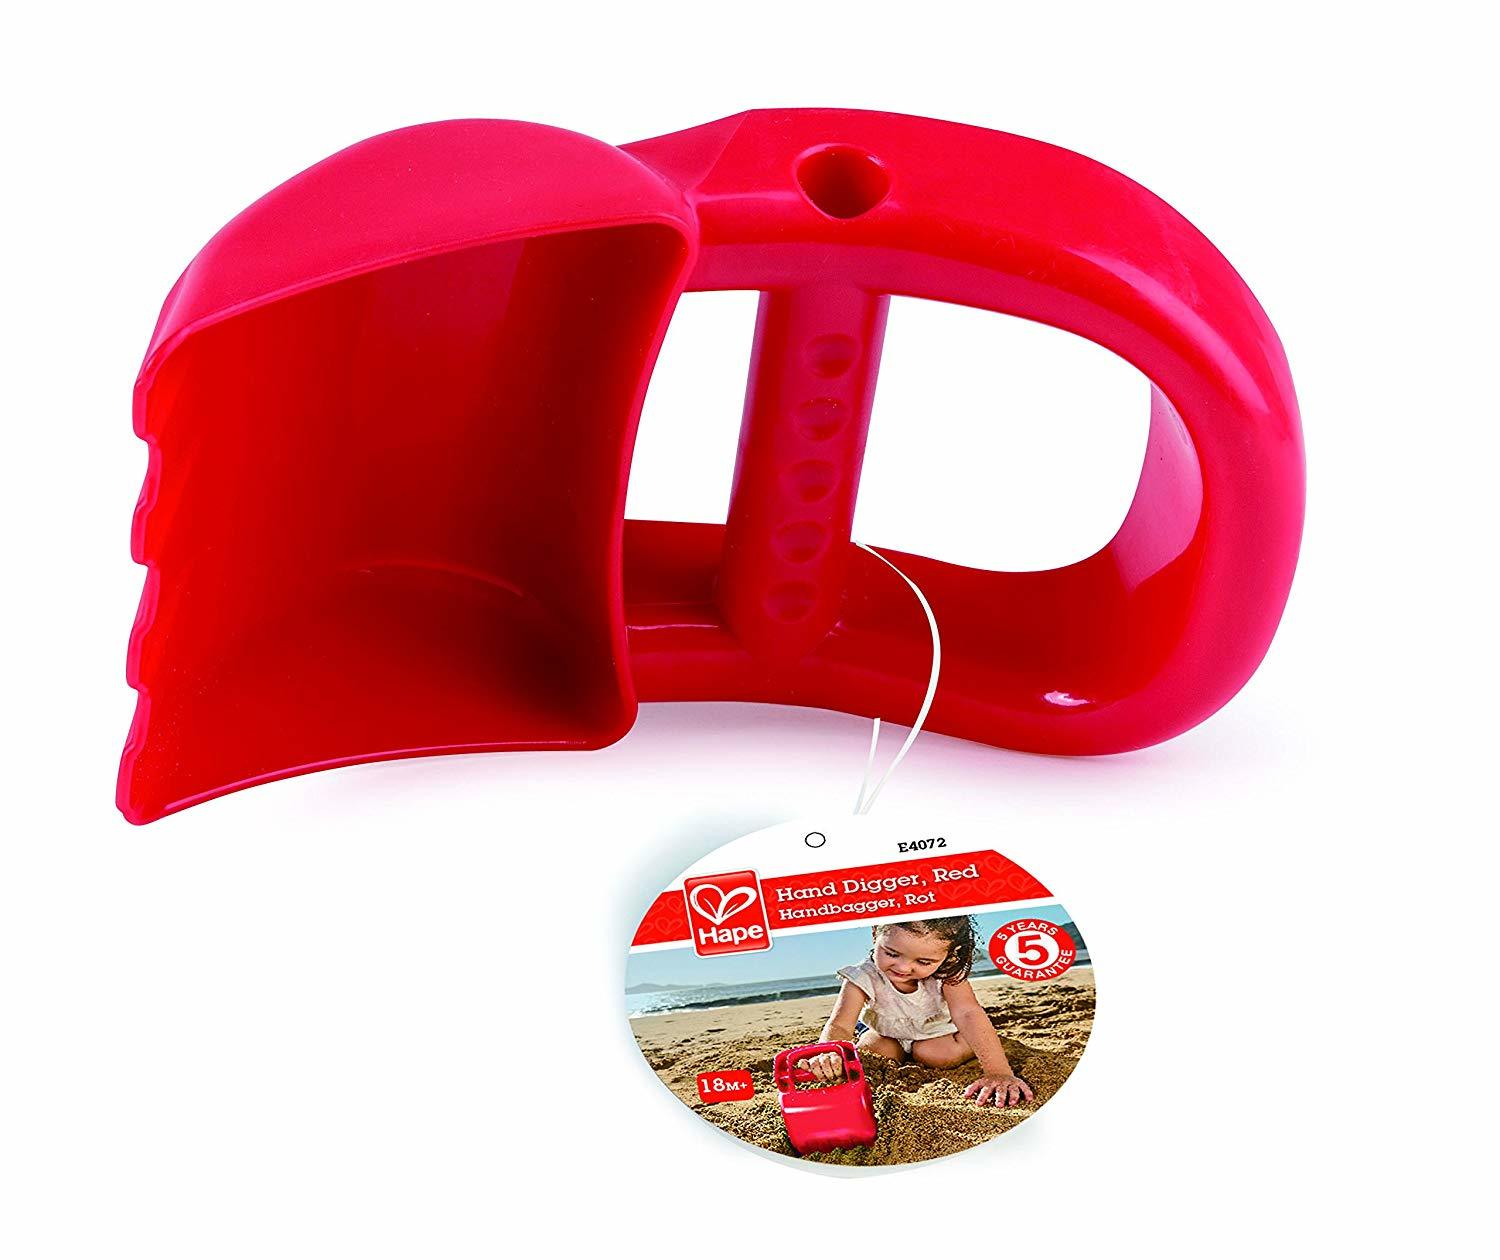 Hape: Hand Digger - Sand Toy (Red) image